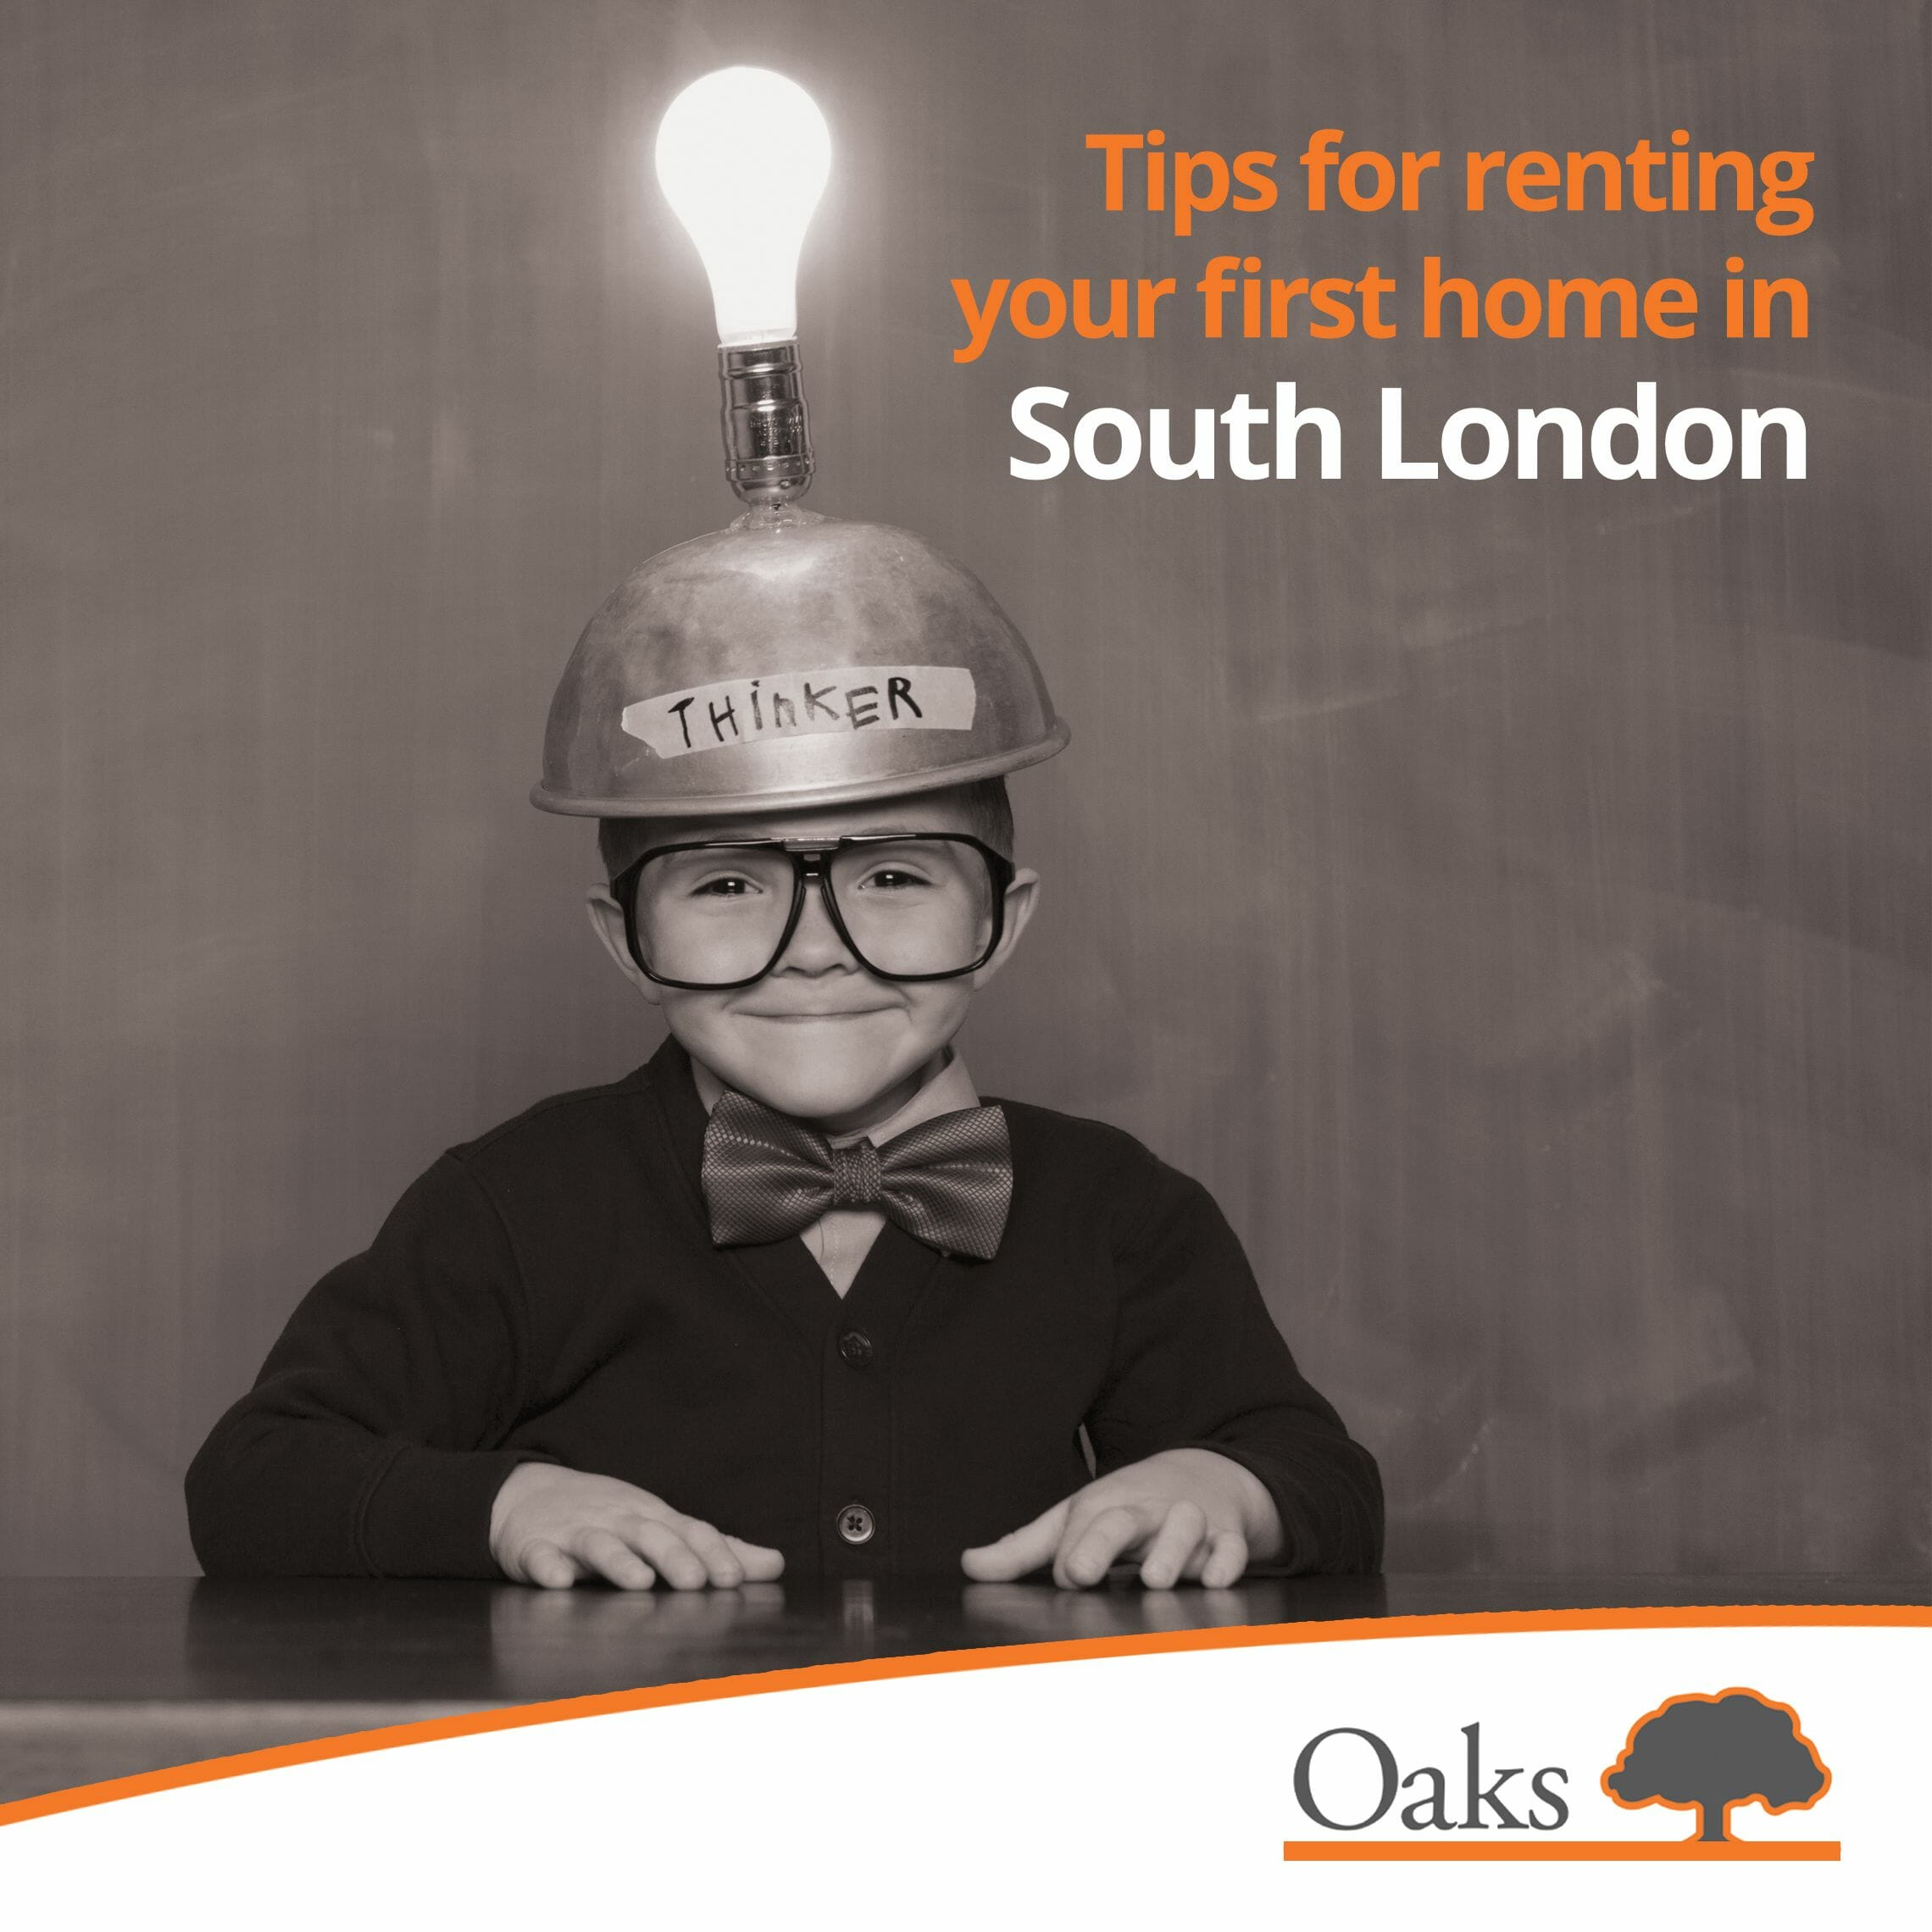 Tips for Renting Your First Home in South London